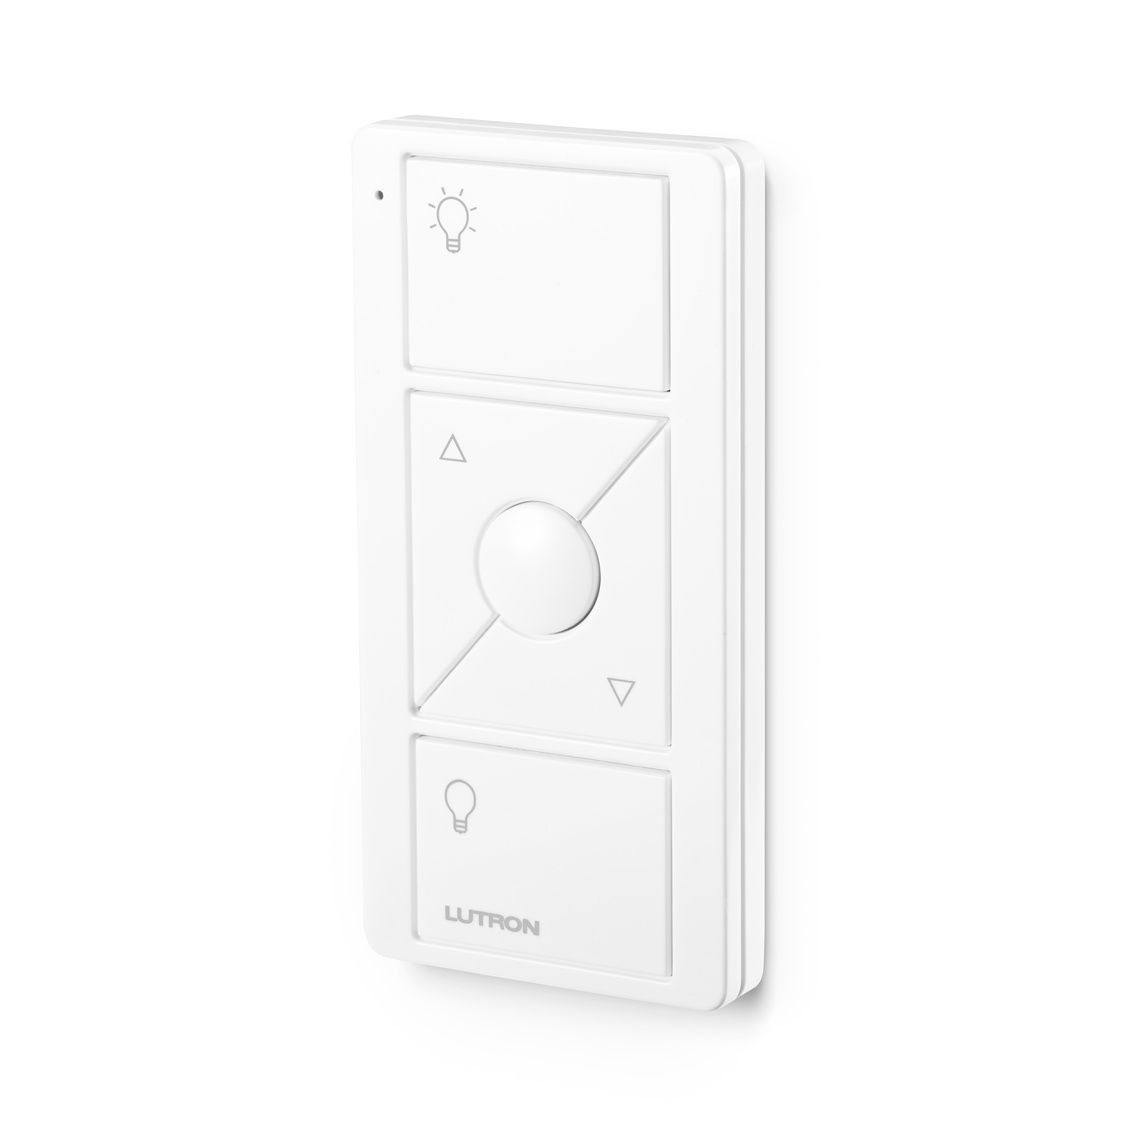 Lutron Wireless Switch >> Lutron Caseta Wireless In Wall Light Dimmer With Remote